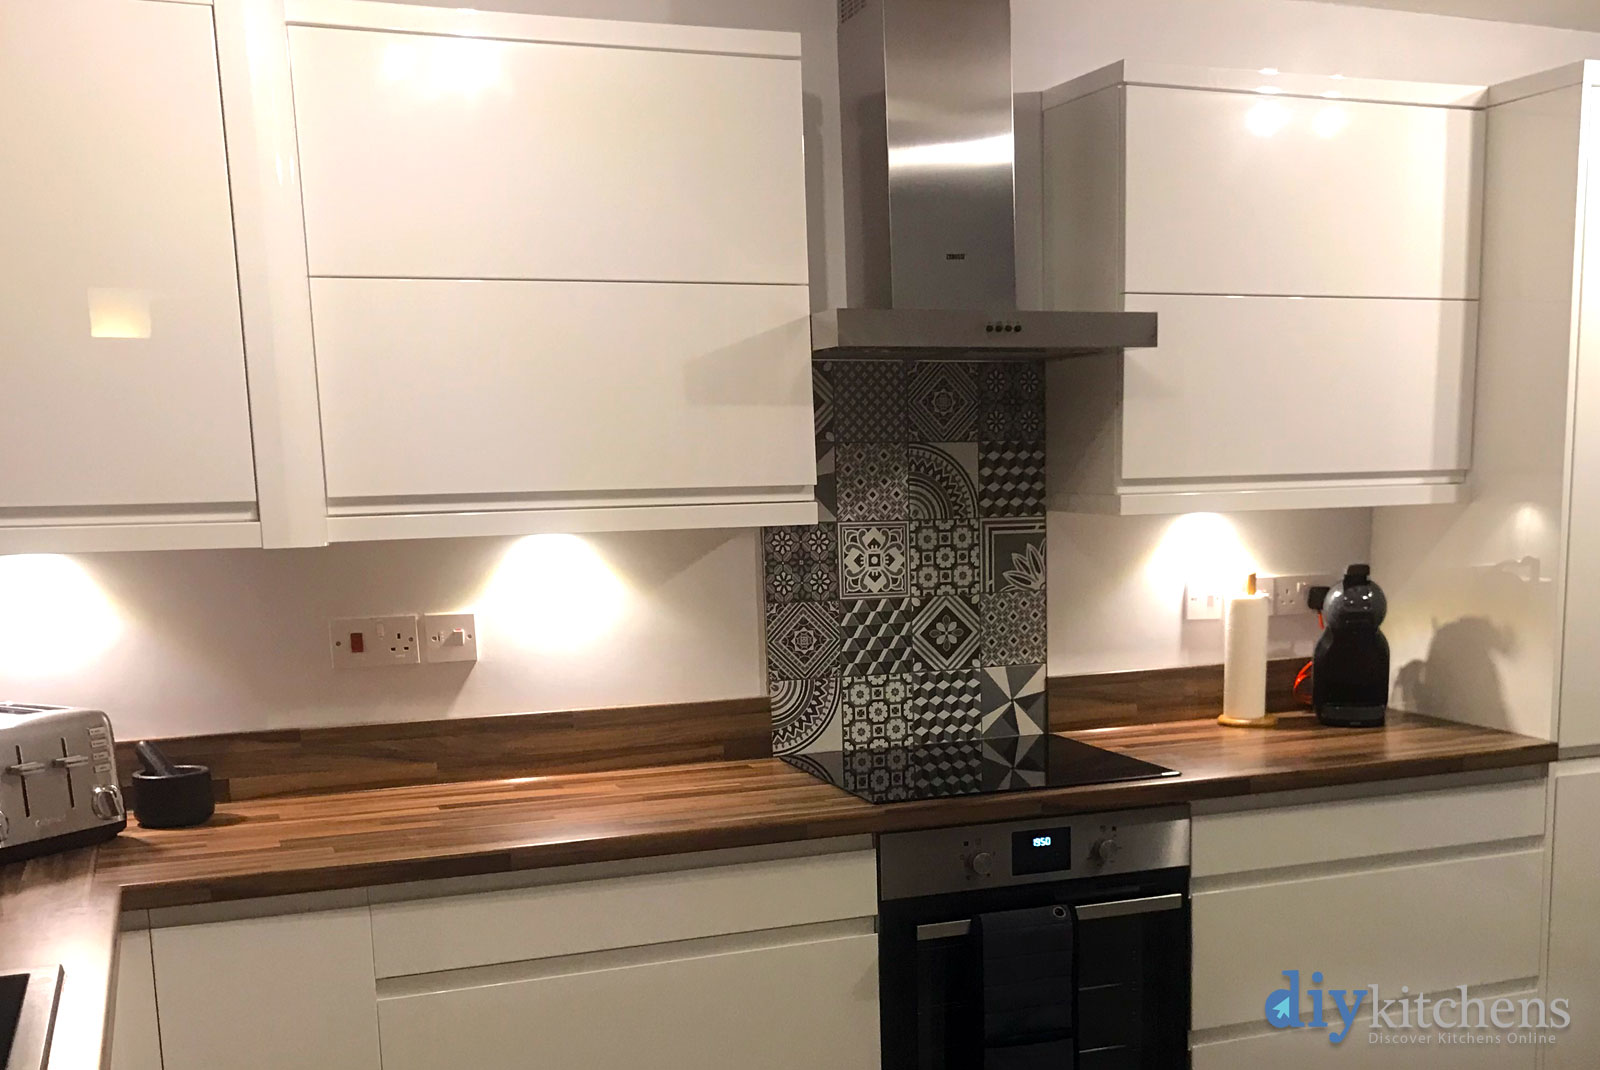 Melissa from london our lovely new luca gloss white kitchen for Diy kitchens com reviews